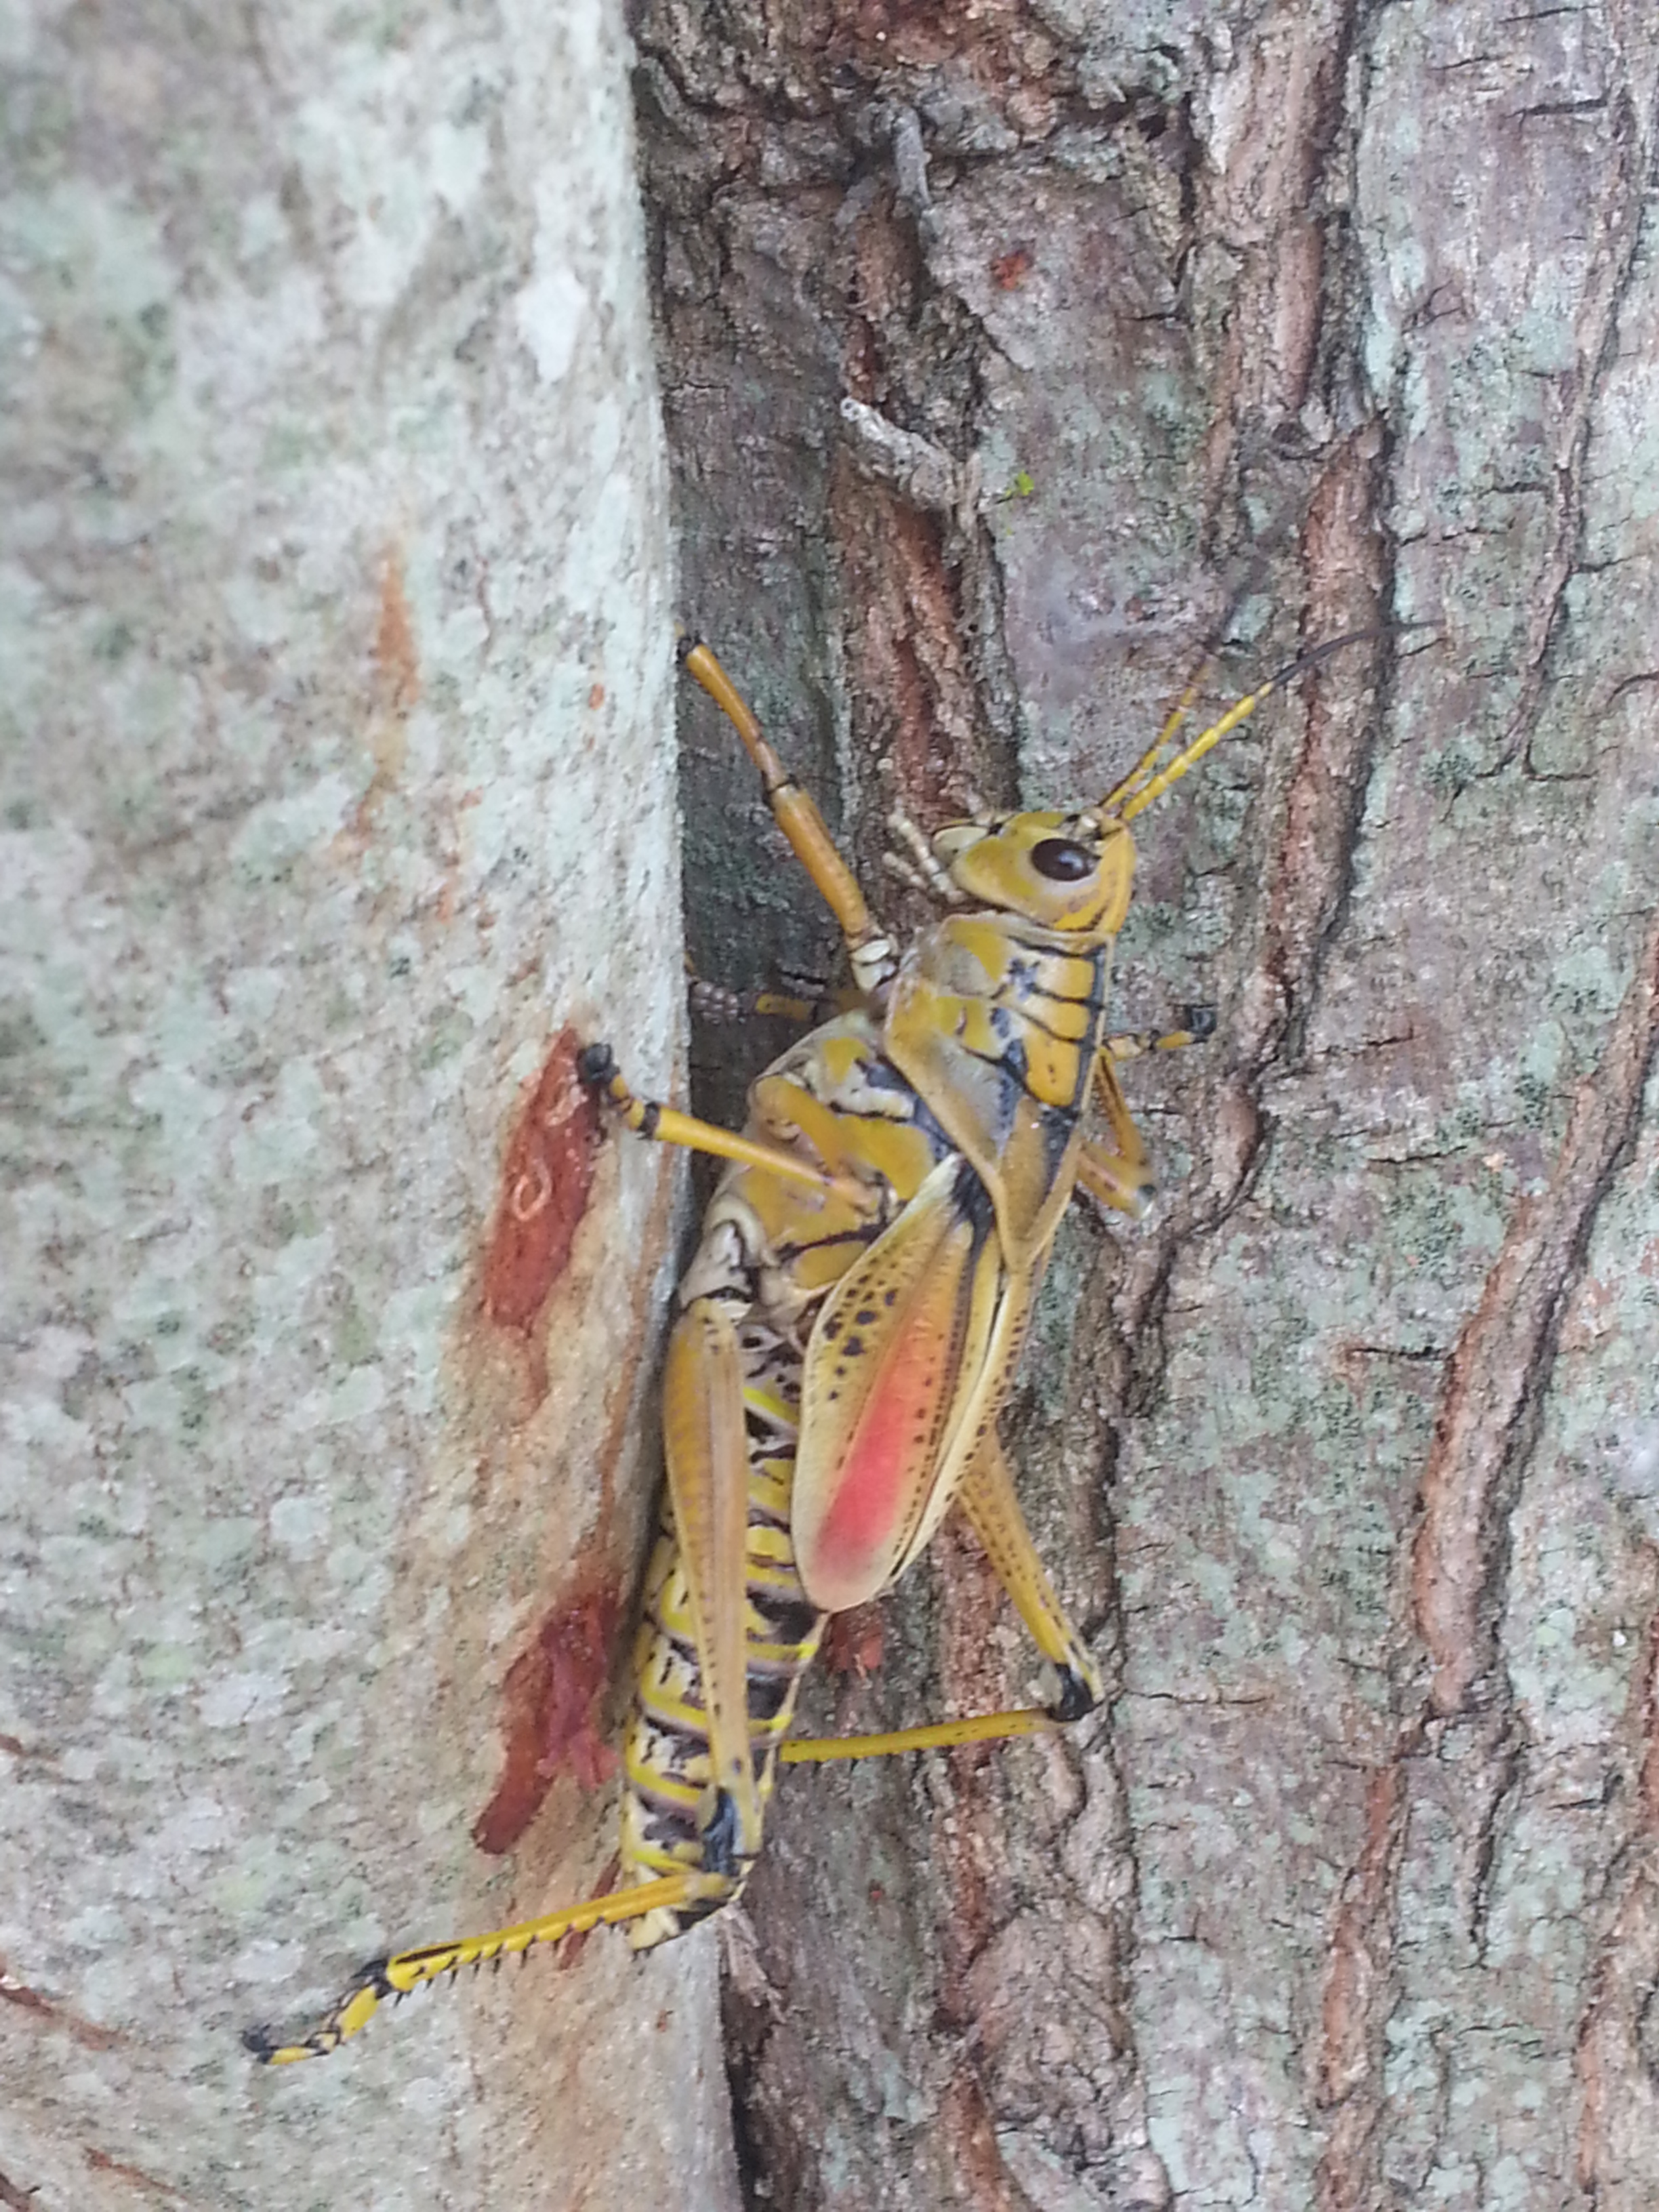 Eastern Lubber Grasshopper Life Cycle